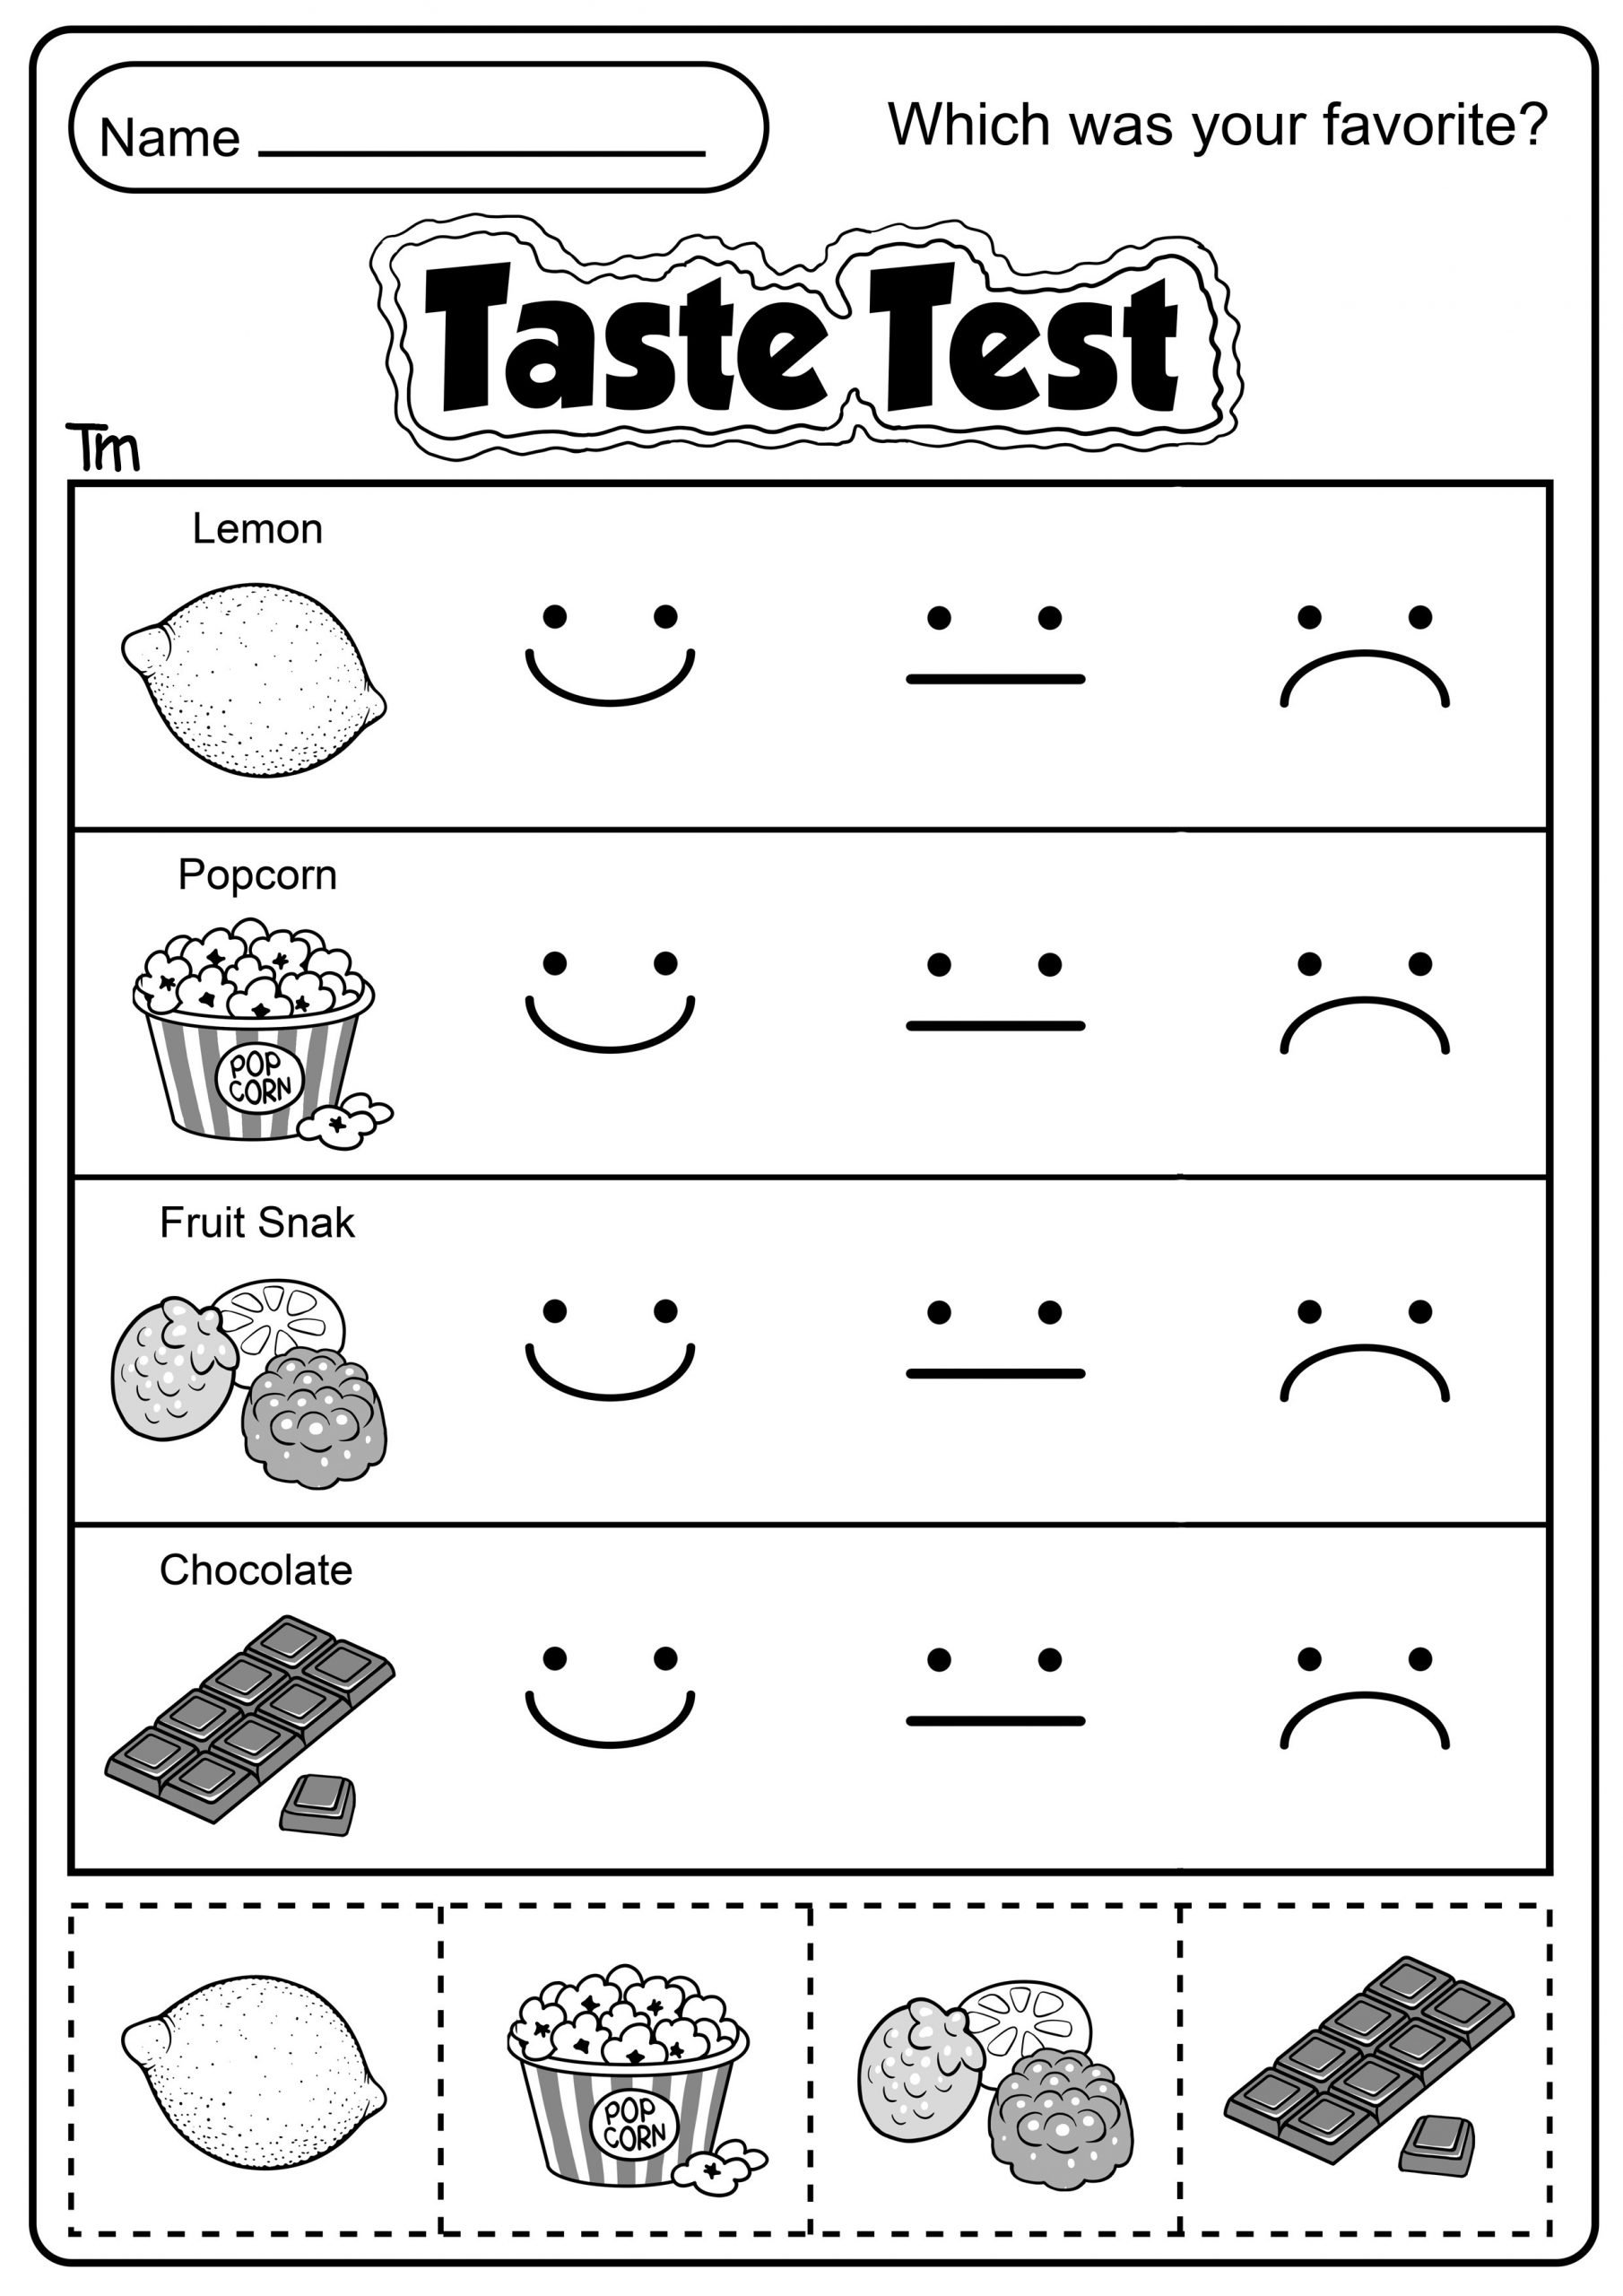 Sense Of Taste Worksheets the Five Senses Taste Test Teachersmag